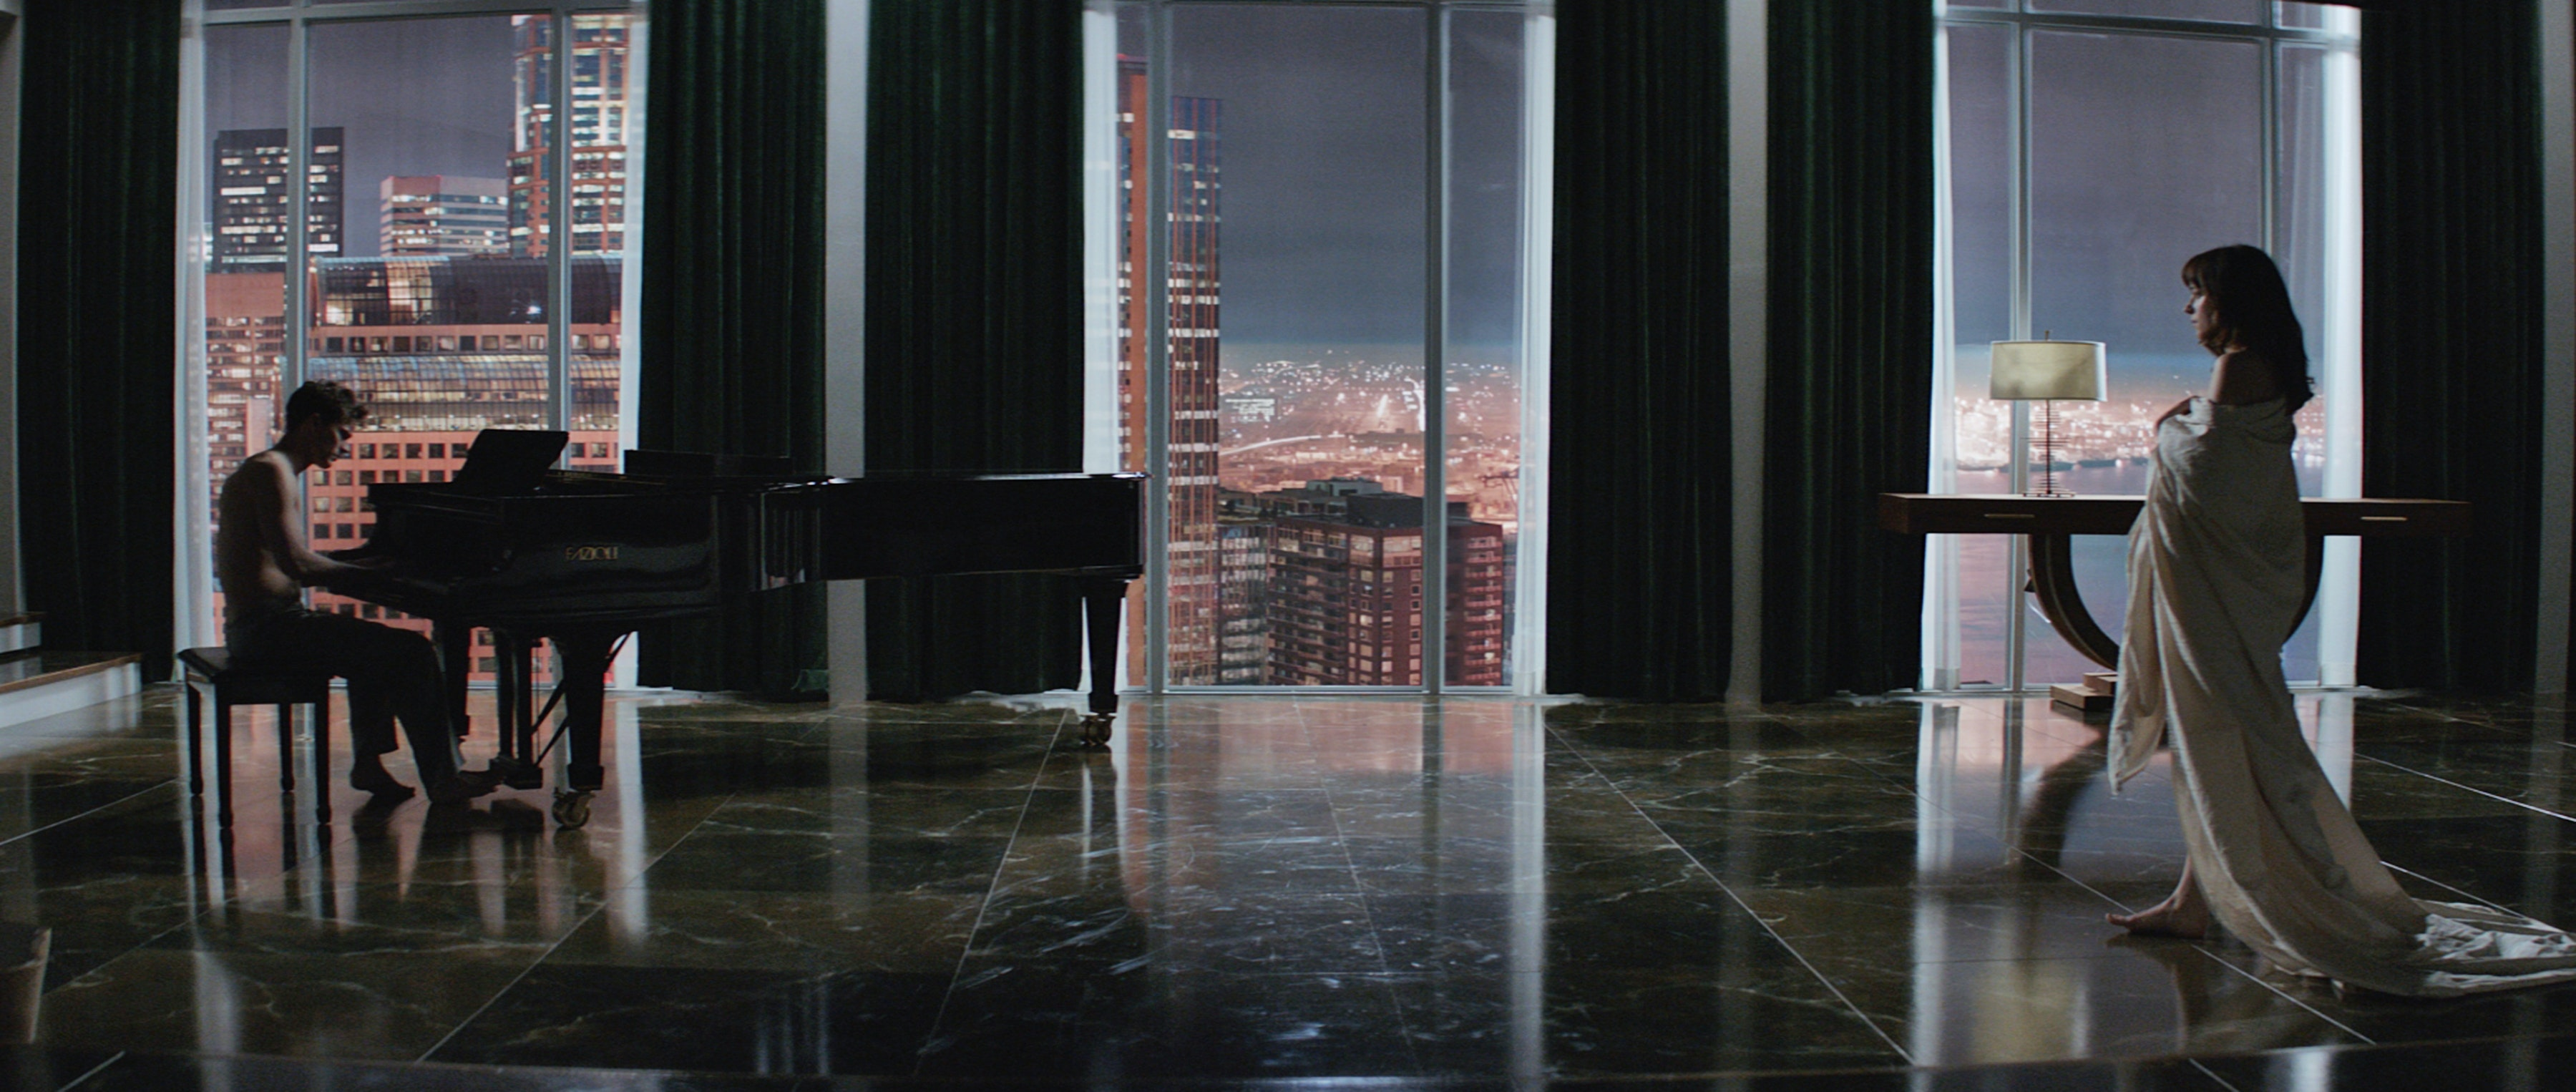 WIN Tickets To The Fifty Shades Of Grey Premiere! sweepstakes